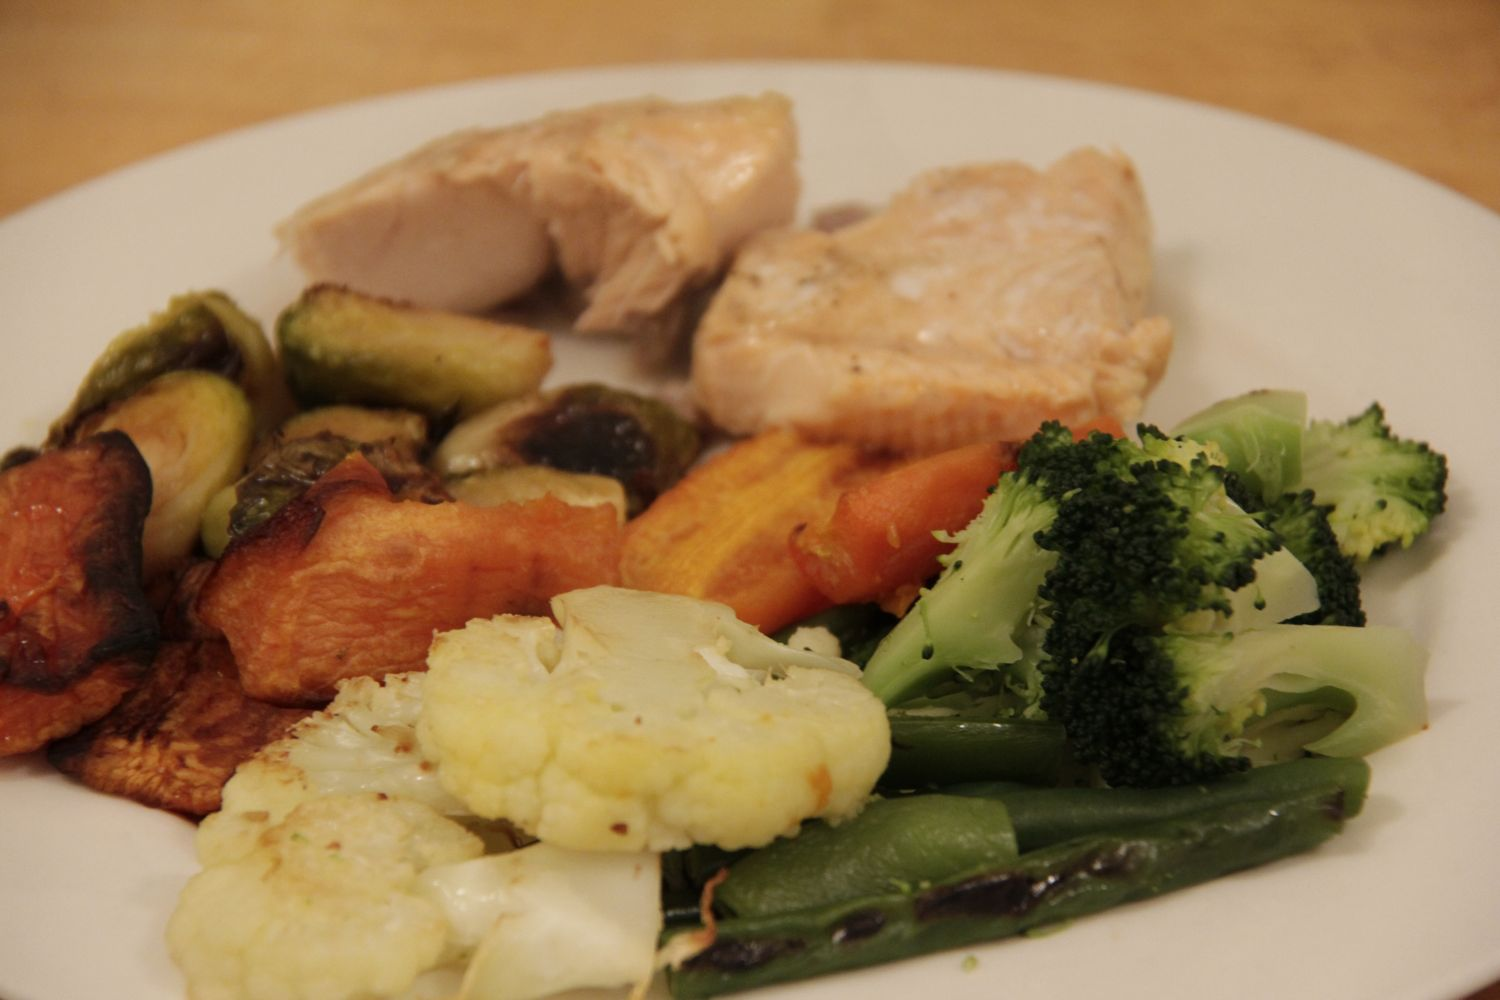 Ending the week on a high - Sunday night Salmon and Roasted Vegetables